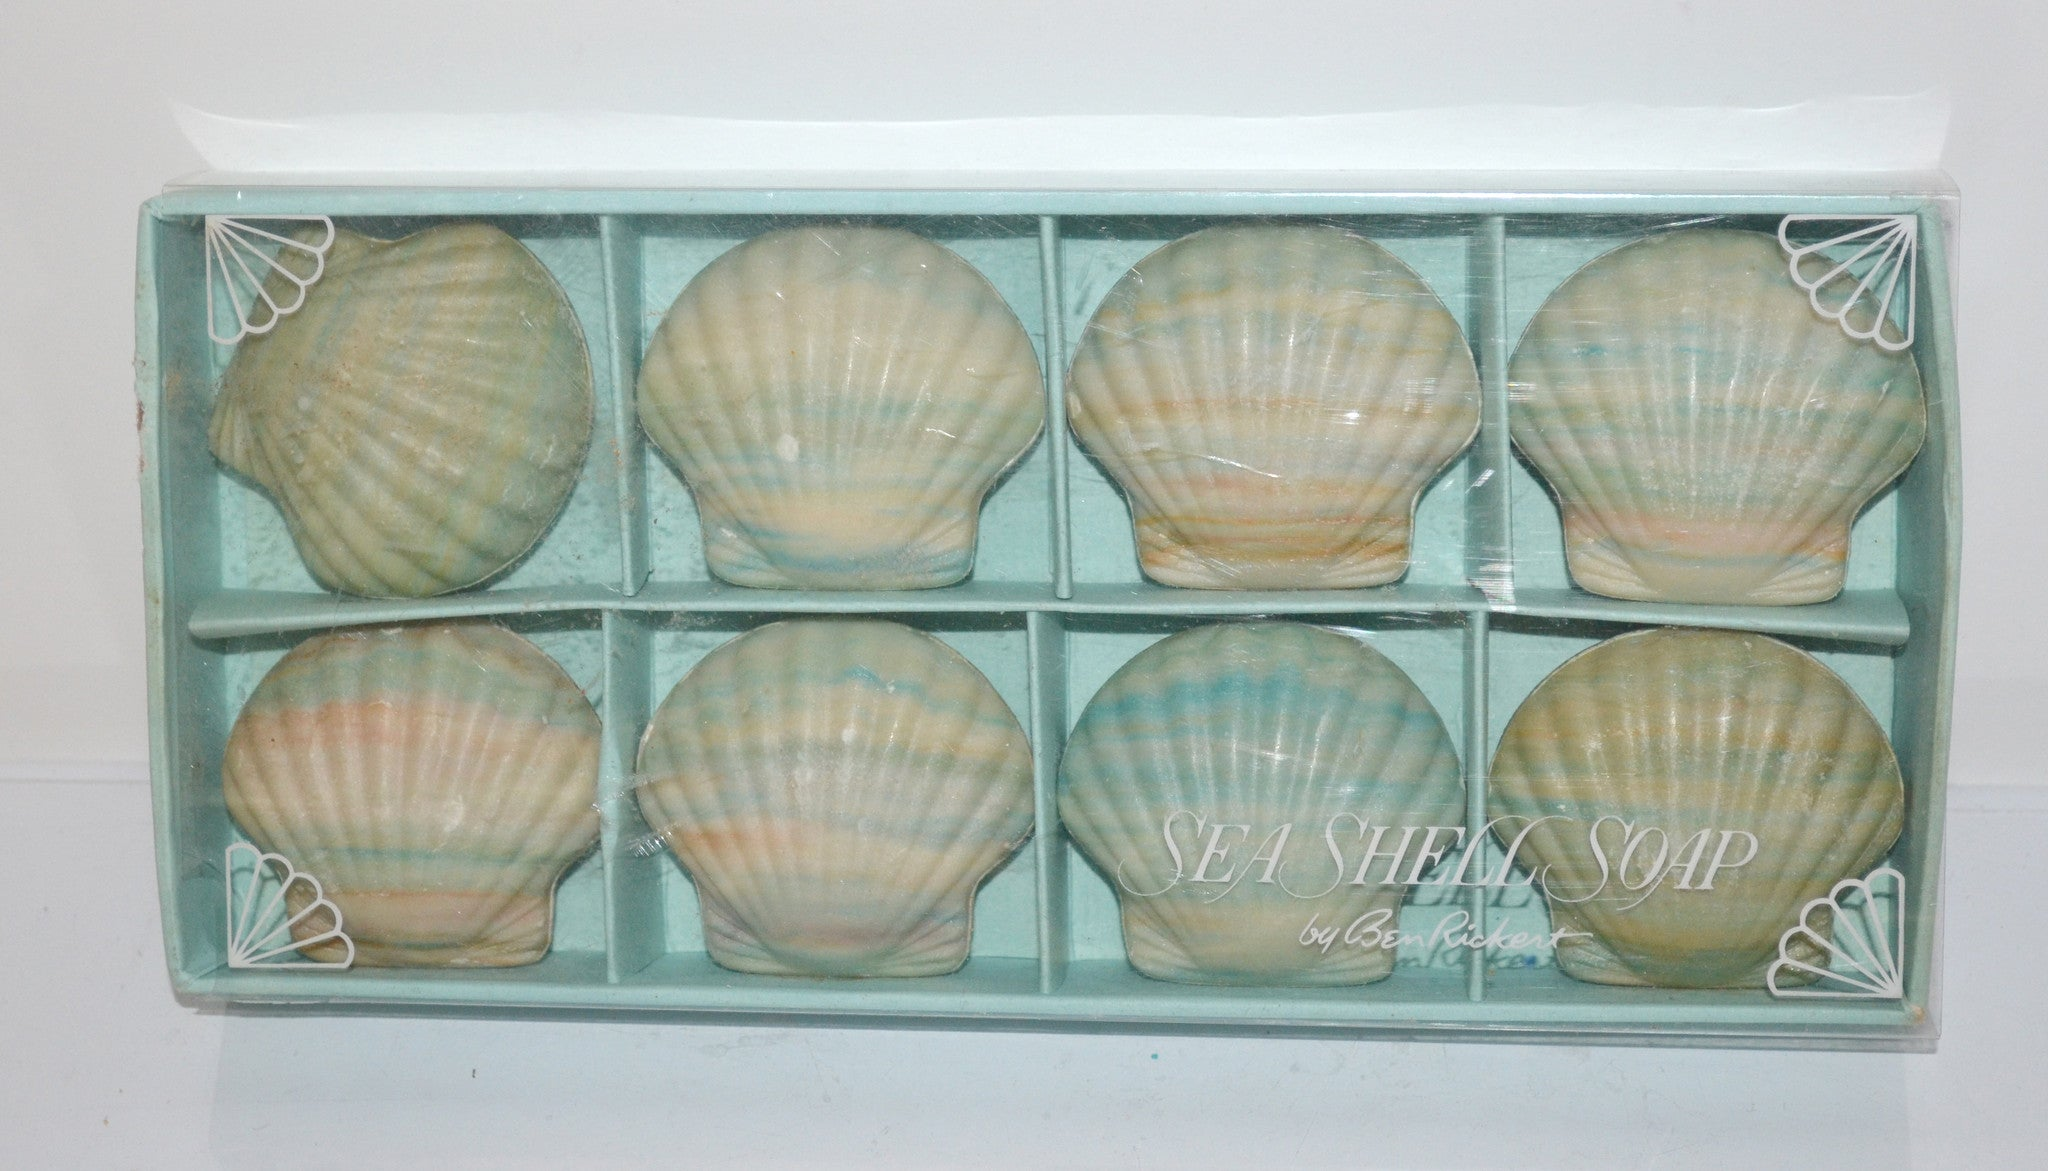 Ben Rickert Sea Shell Soap